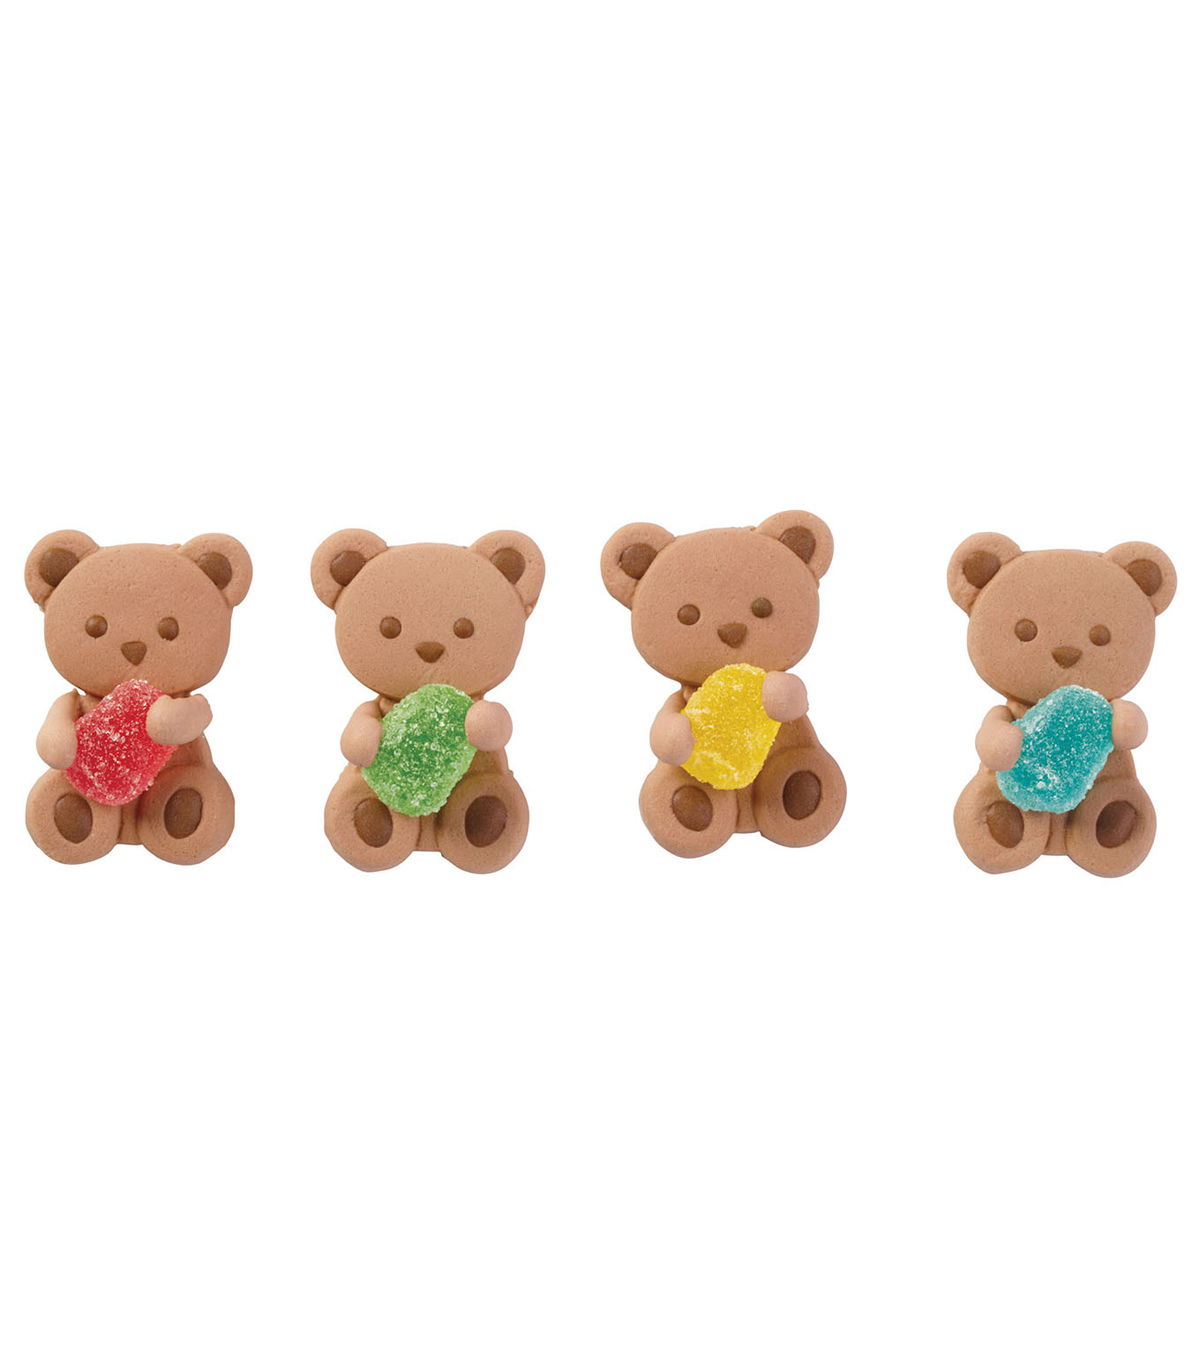 Wilton® 12 Pack Icing Decoration-Teddy Bear with Gum Drop